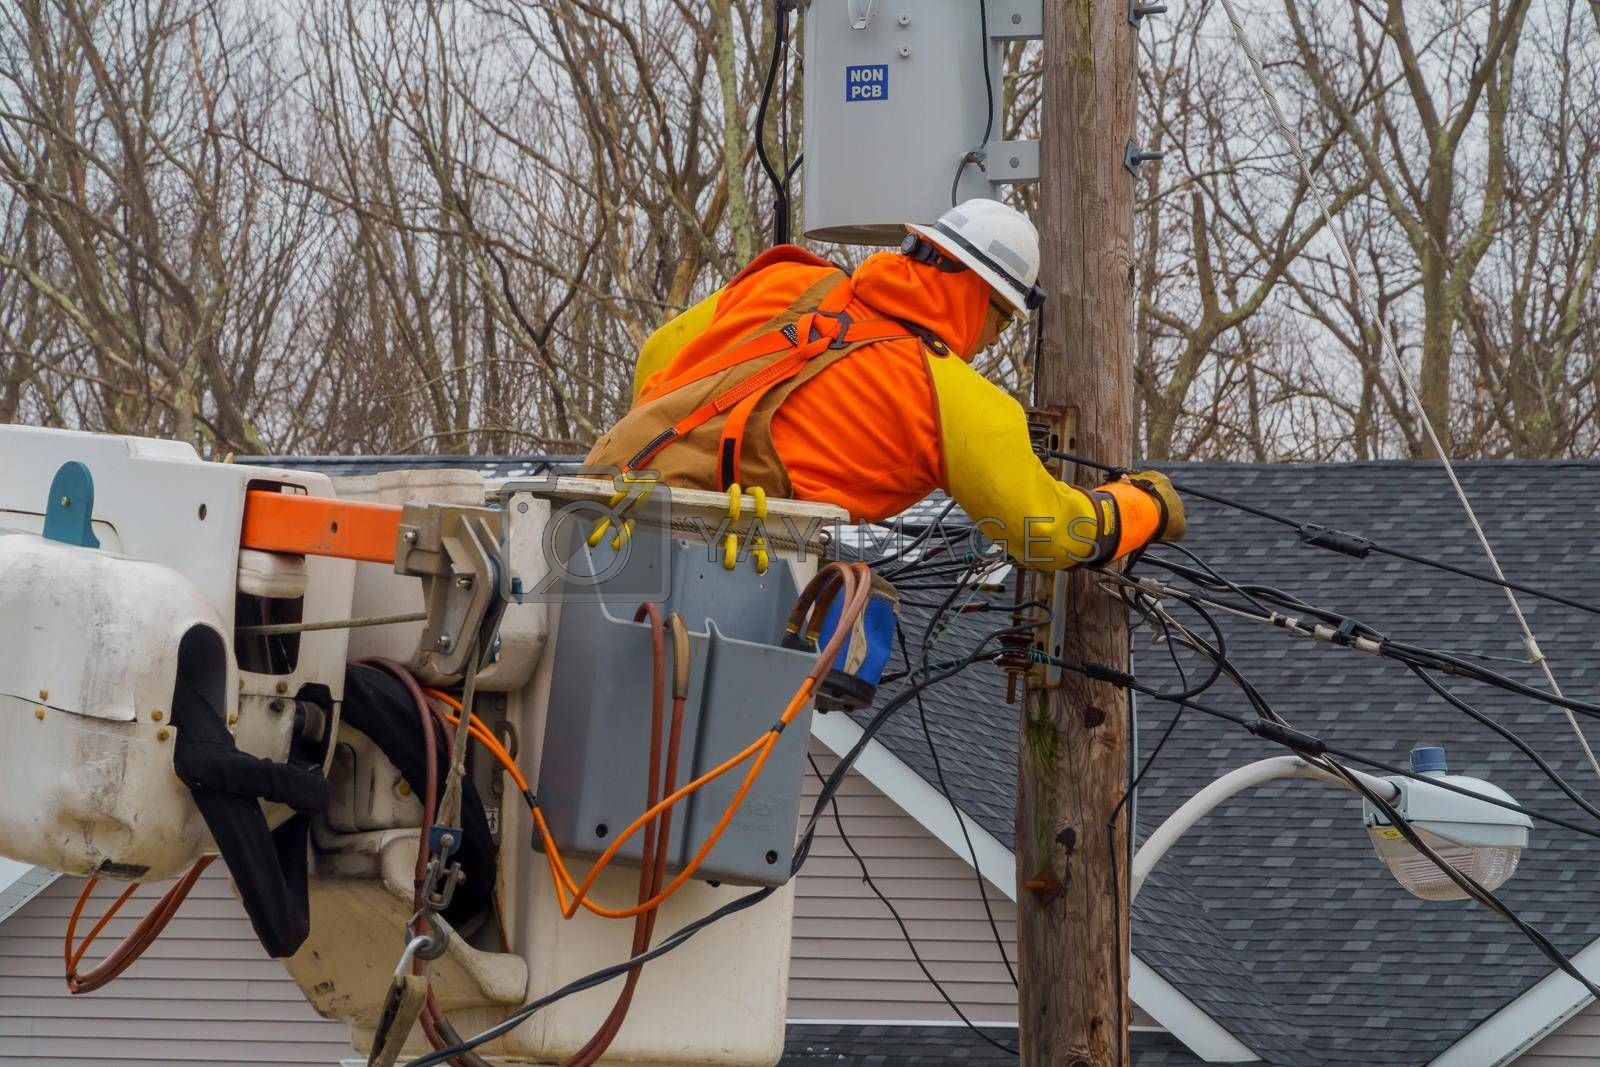 10 FEBRUARY NYC NY USA: Electrician repair system of electric wire on wooden pylon after snowfall wet snow to electric wires.